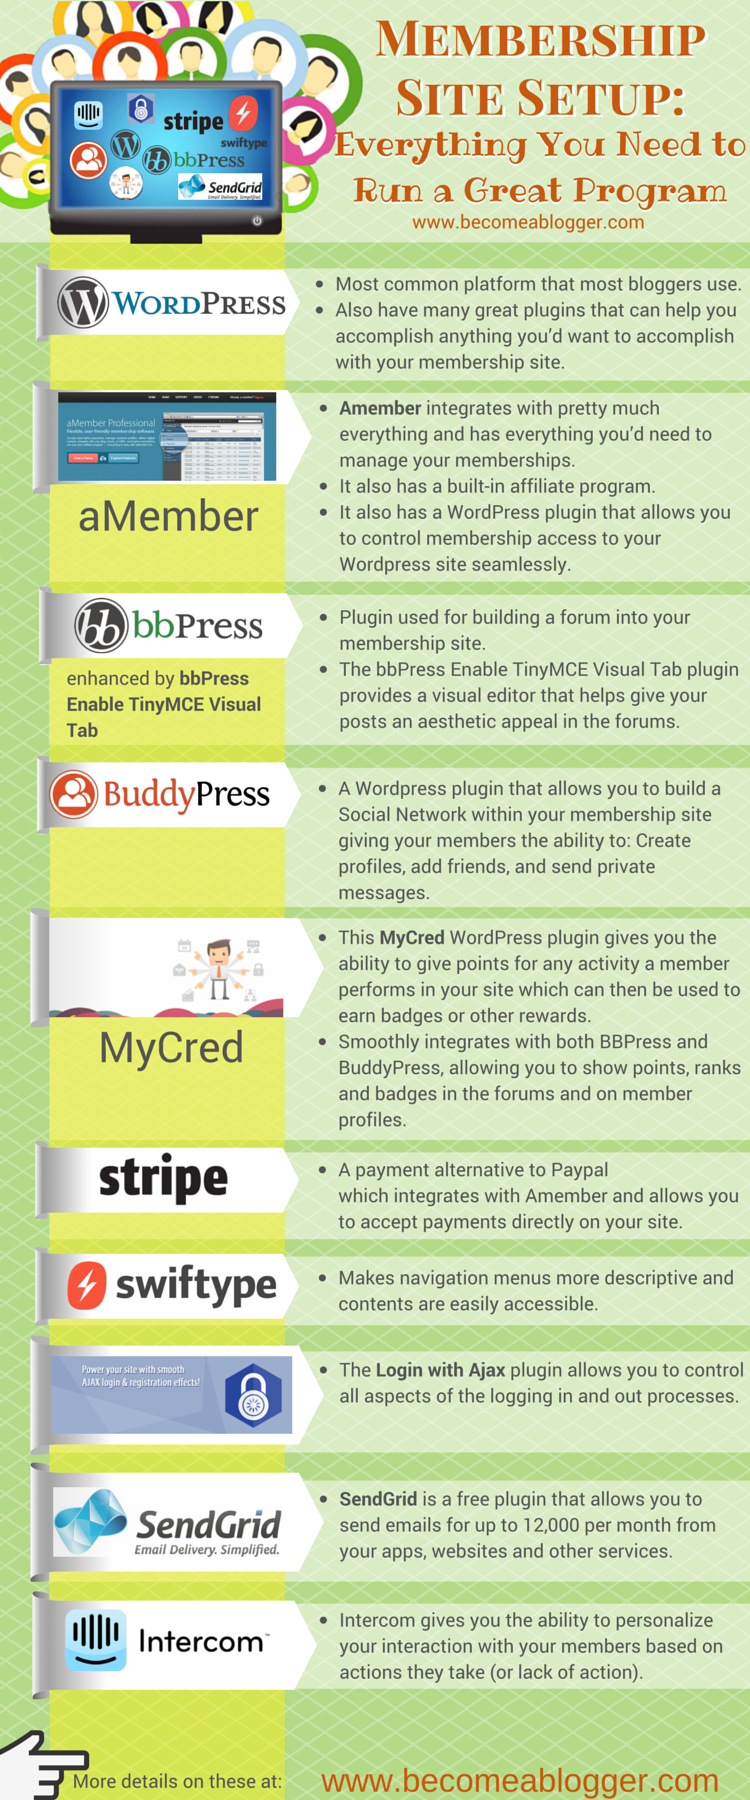 07_20_Membership-Site_Infographic